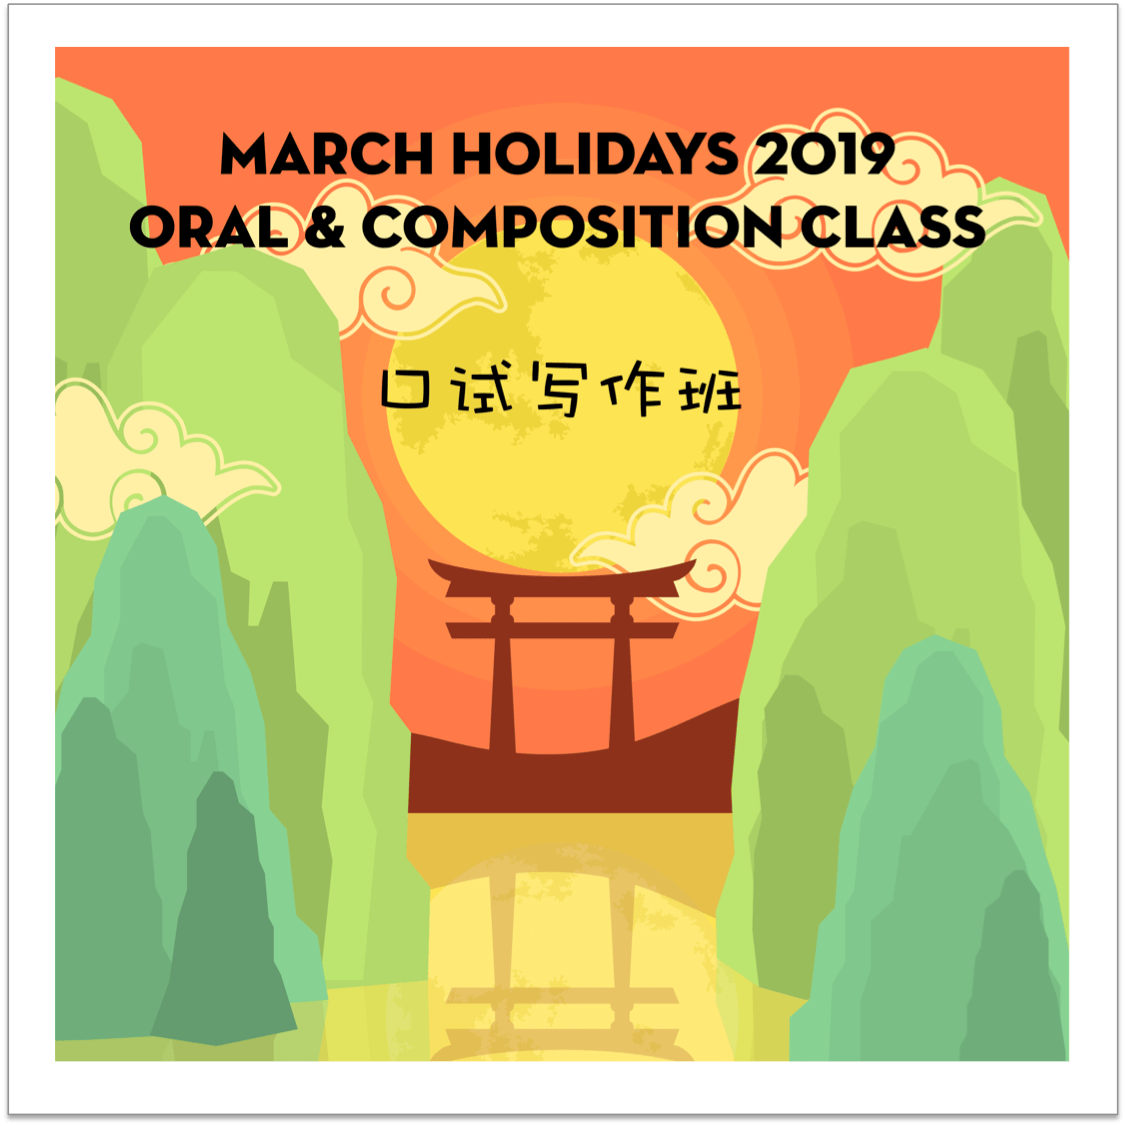 March Holiday 2019 Oral & Composition Class